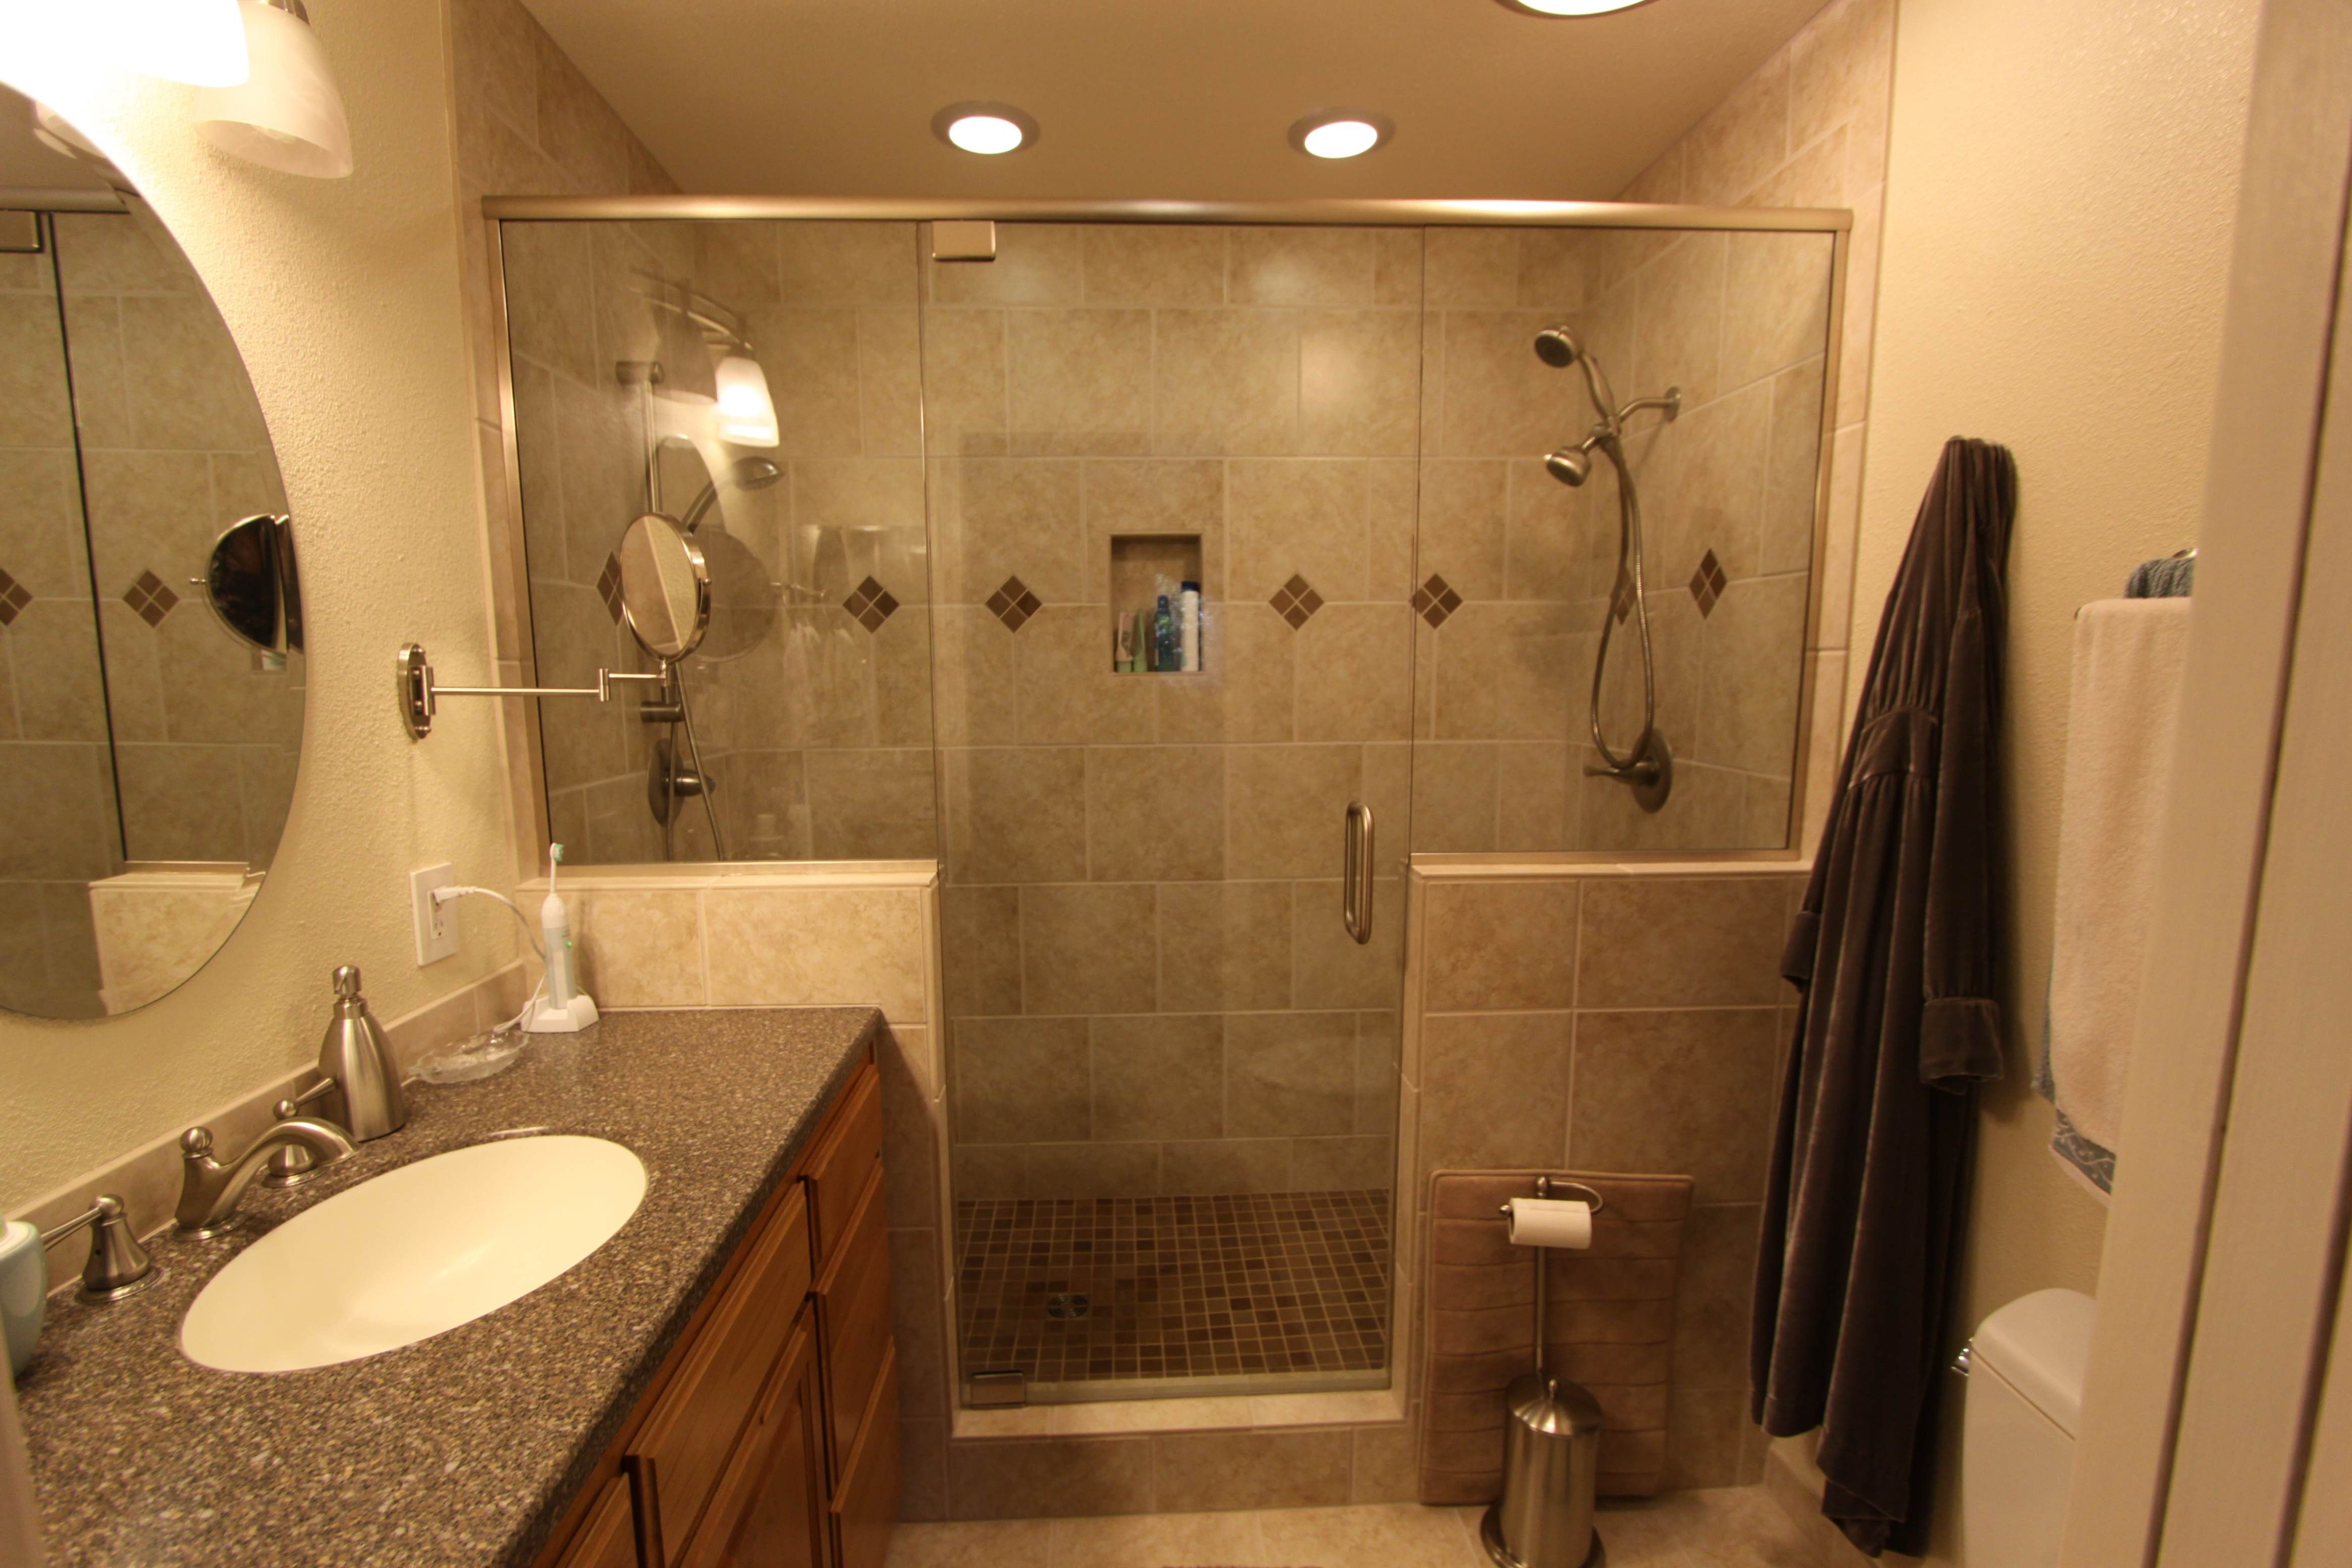 Pin By Rianty Wallpapers On The Best Of Images Bathroom Remodel Cost Basement Bathroom Remodeling Small Bathroom Renovations